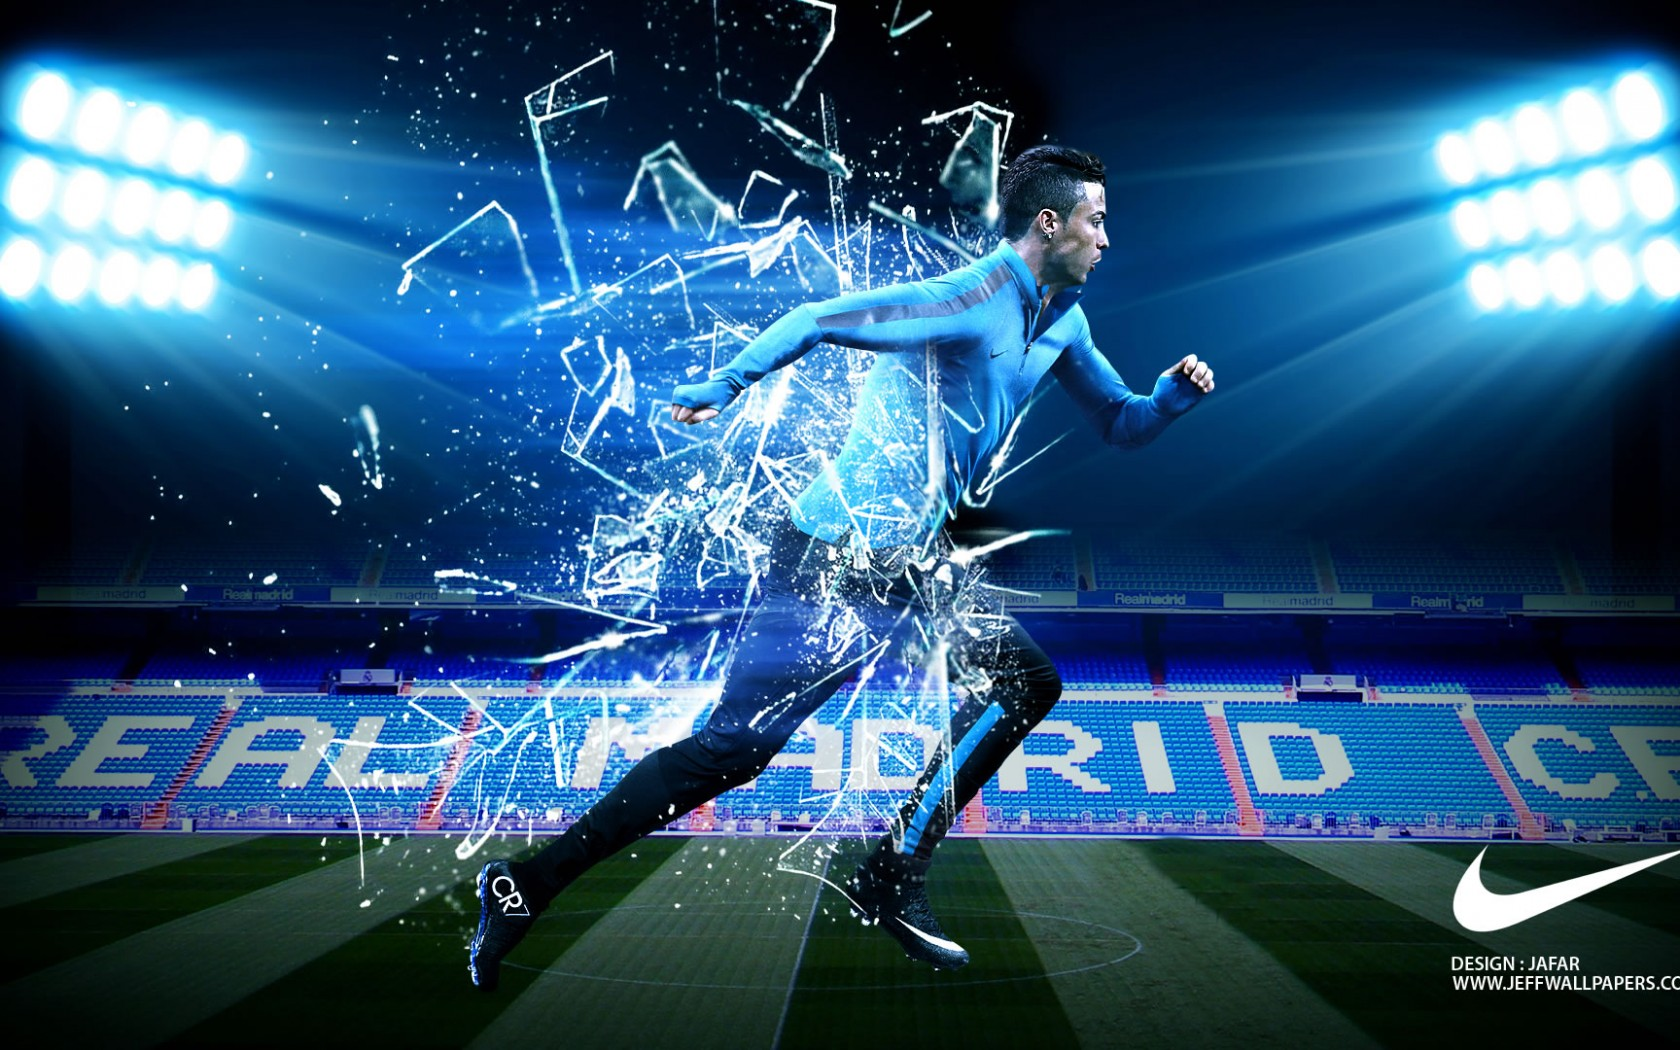 Real Madrid D Cristiano Ronaldo Nike Wallpaper By Jafarjeef Cristiano